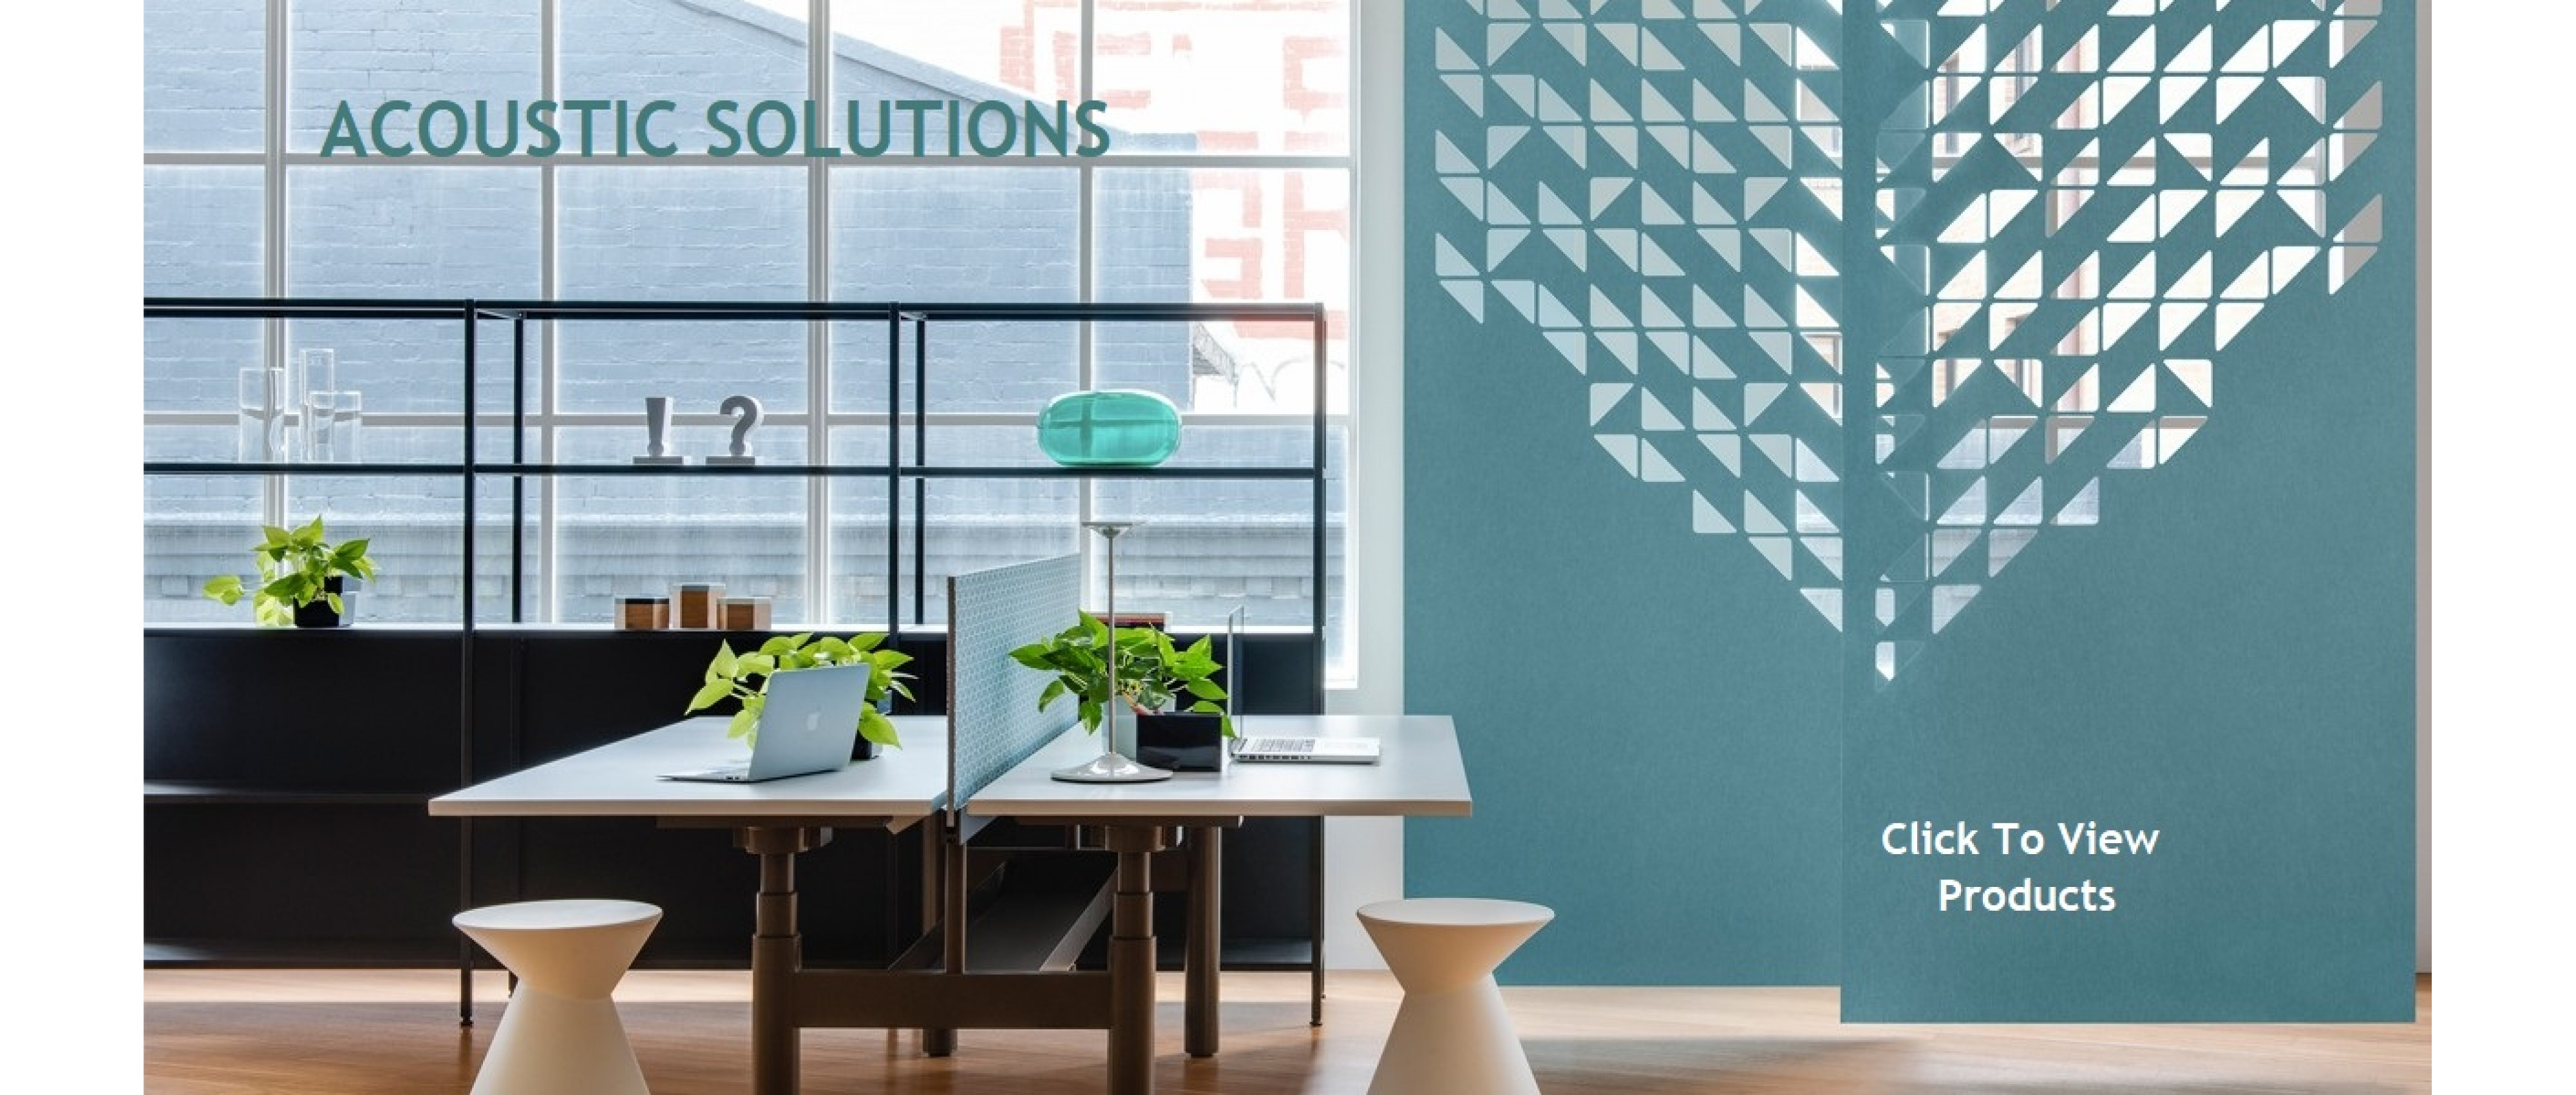 Acoustic Solutions Banner (a)